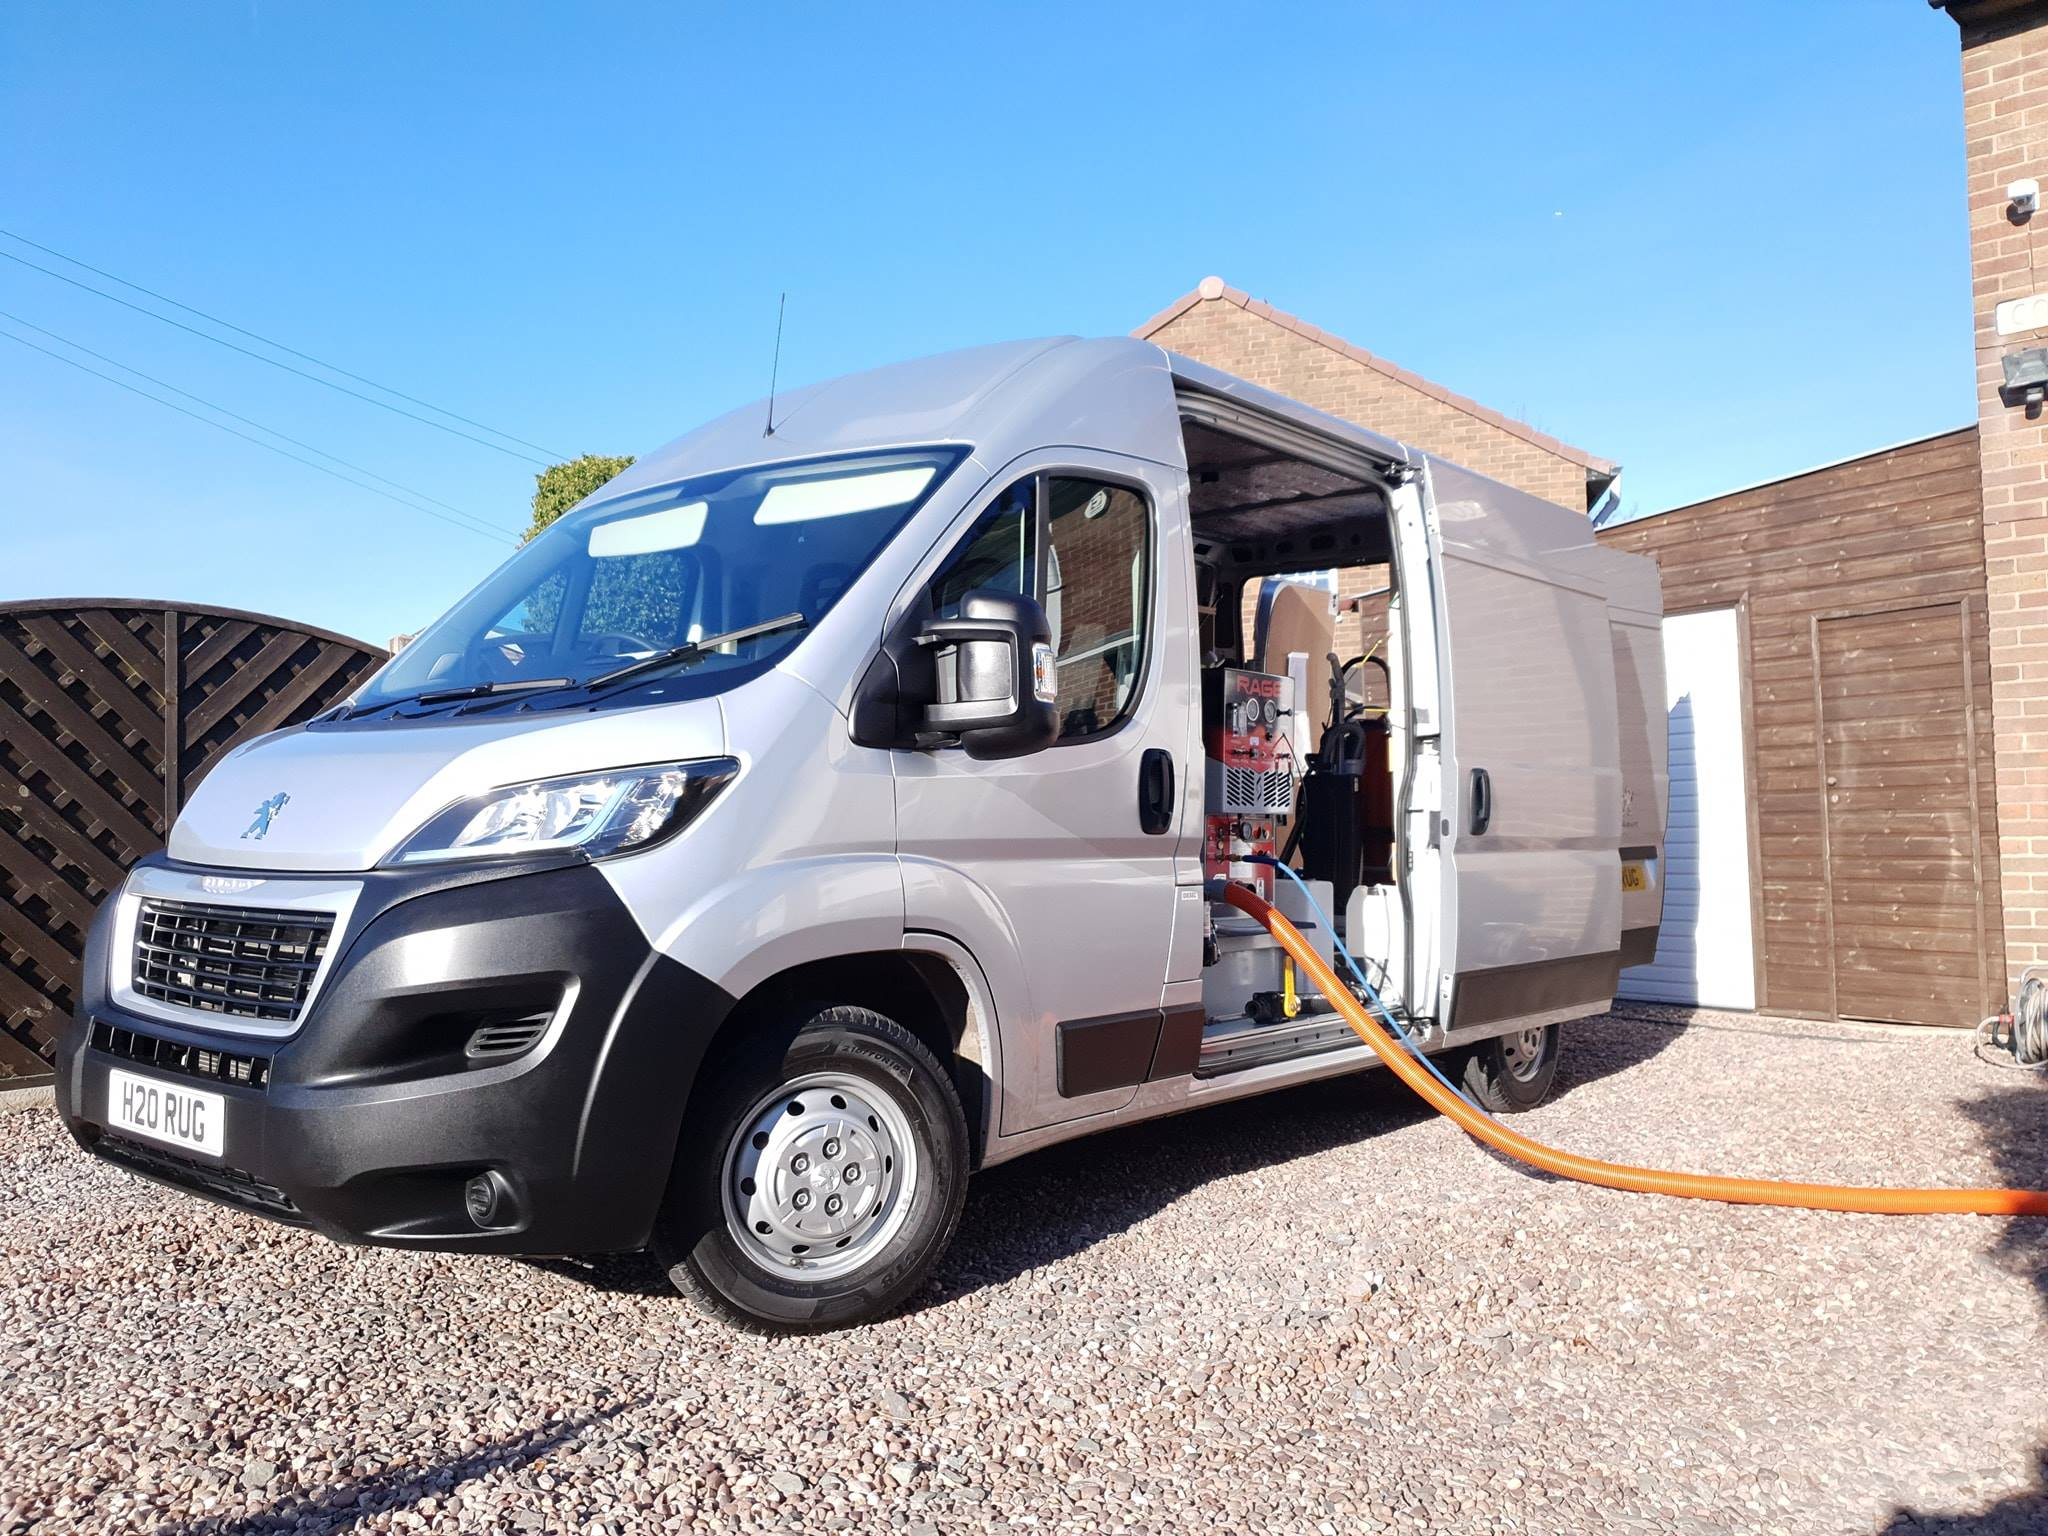 Carpet Cleaning Van and truckmount